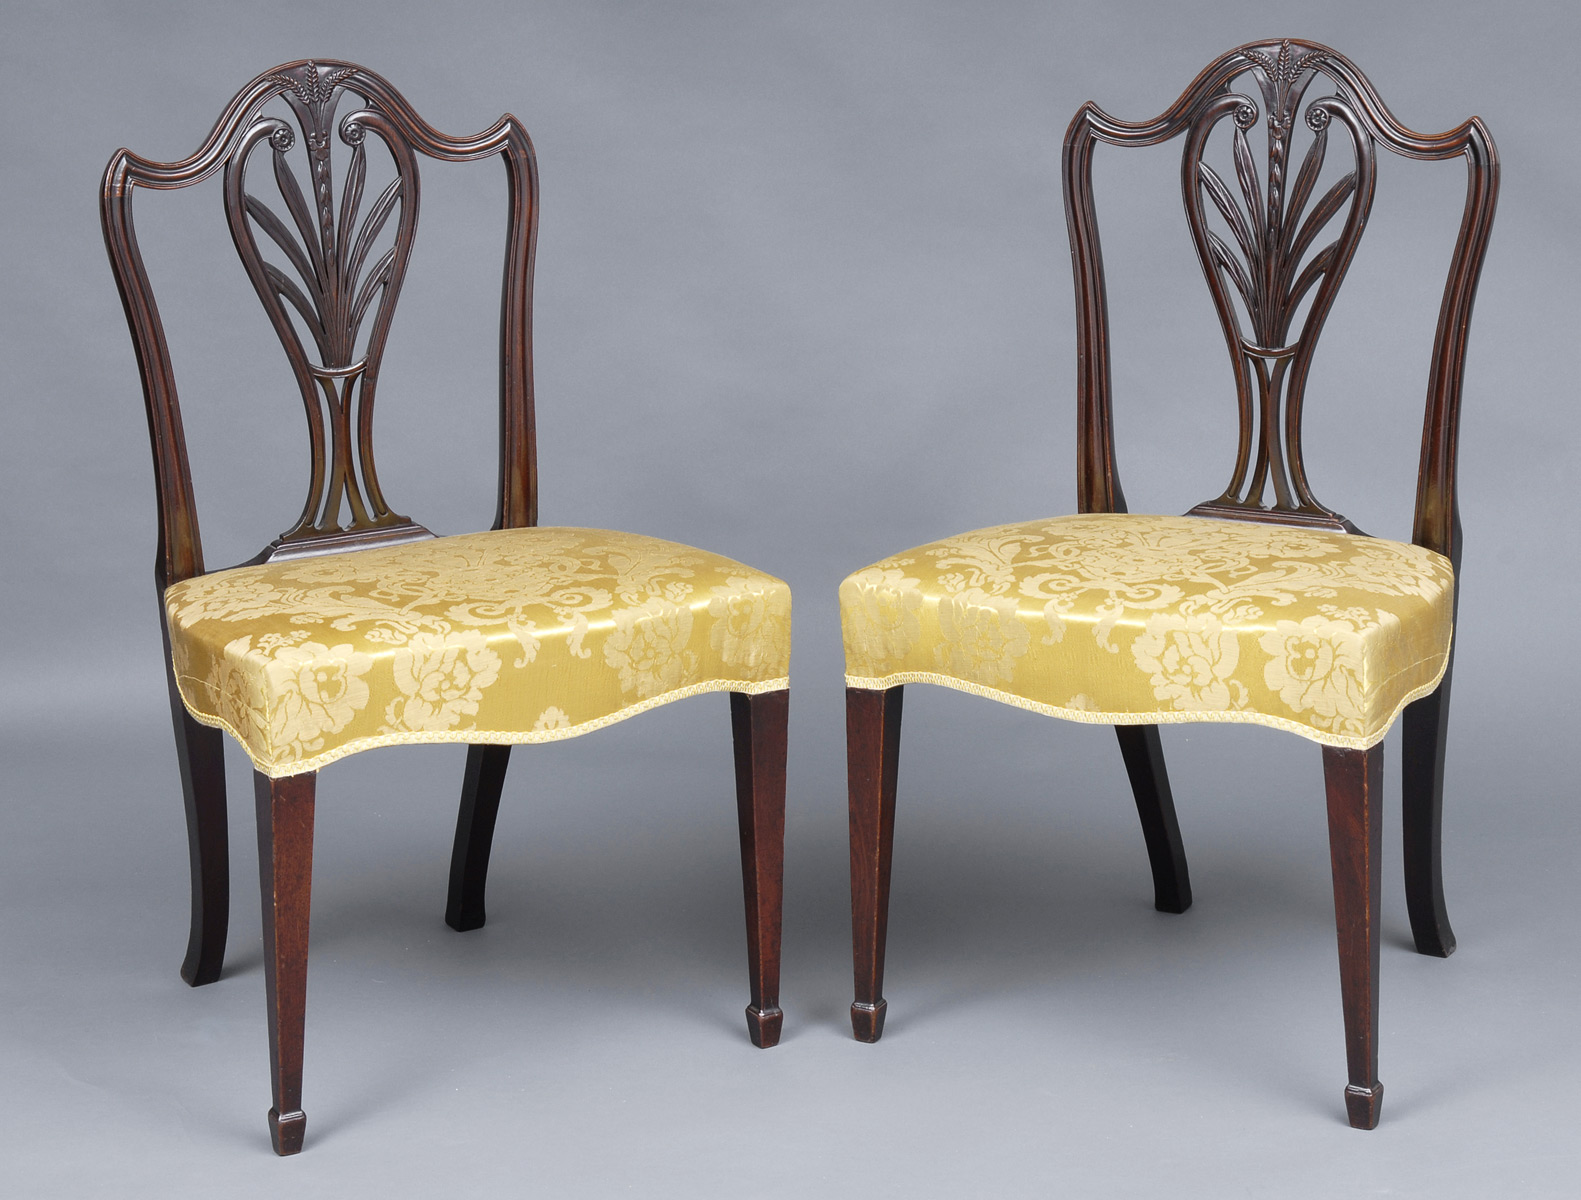 Hepplewhite Chair Antique Side Chairs Pair Hepplewhite Antique Mahogany